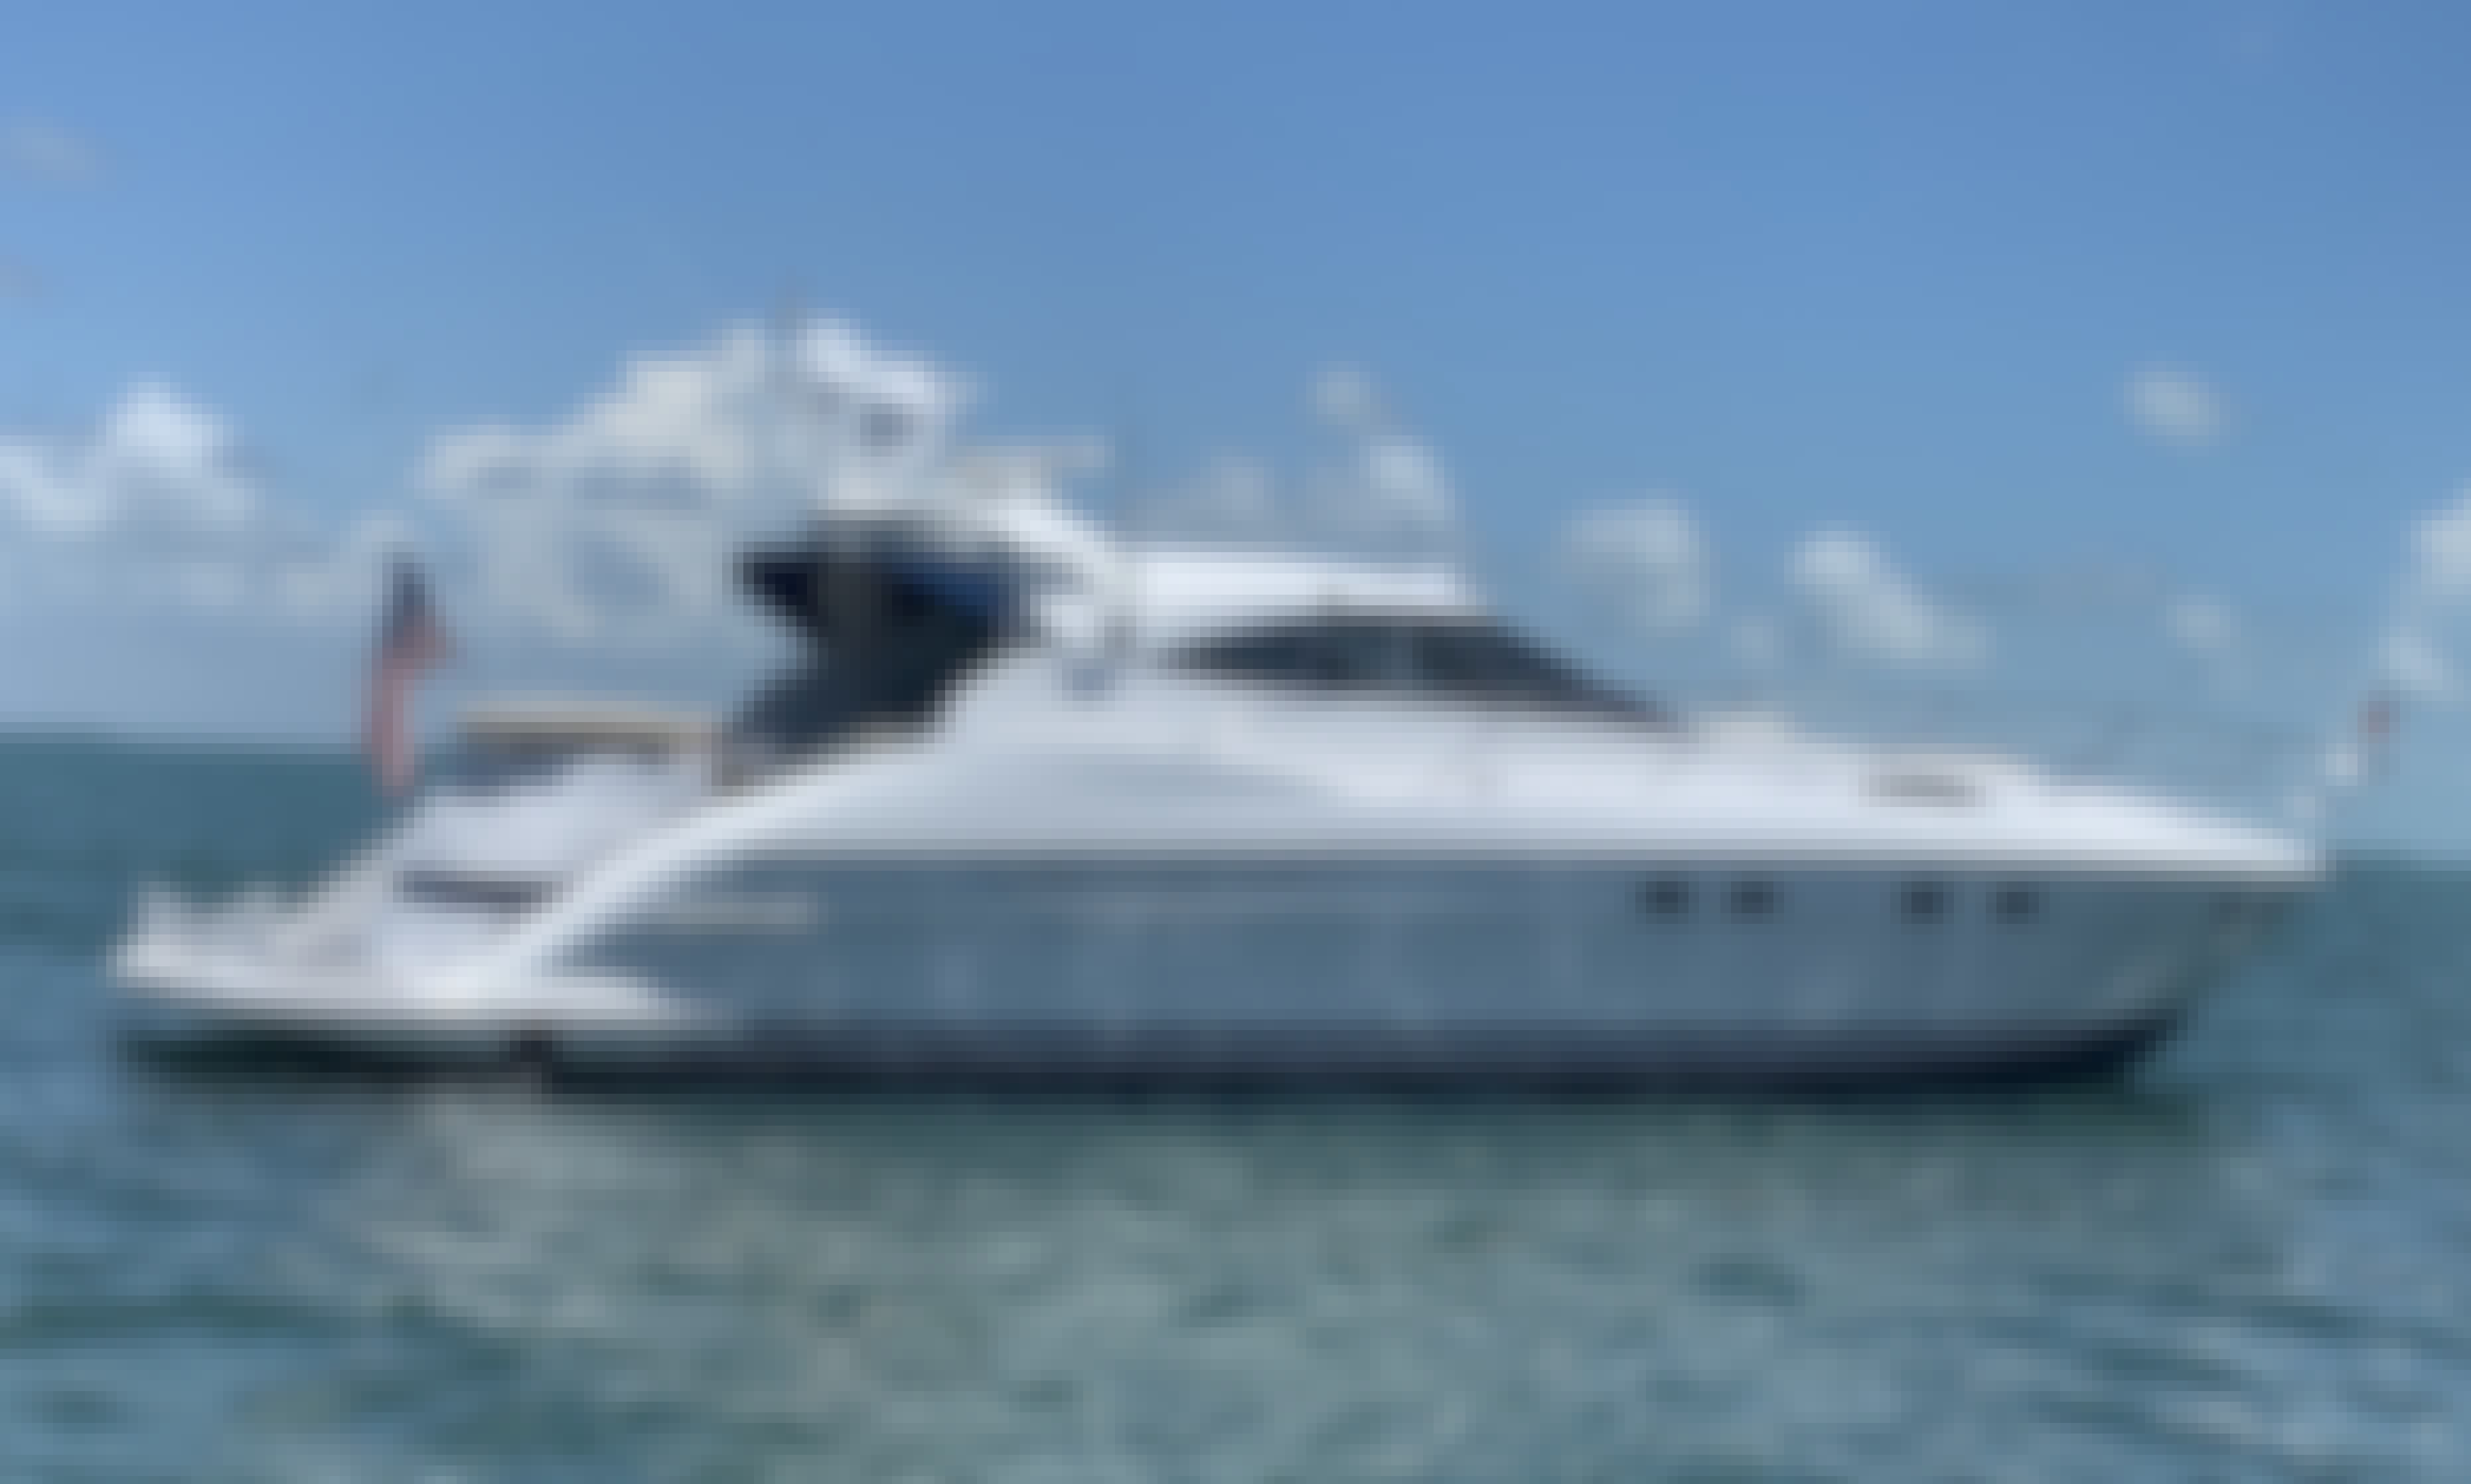 Captained Charter Neptune 60 Motor Yacht in Miami Bay, Florida!